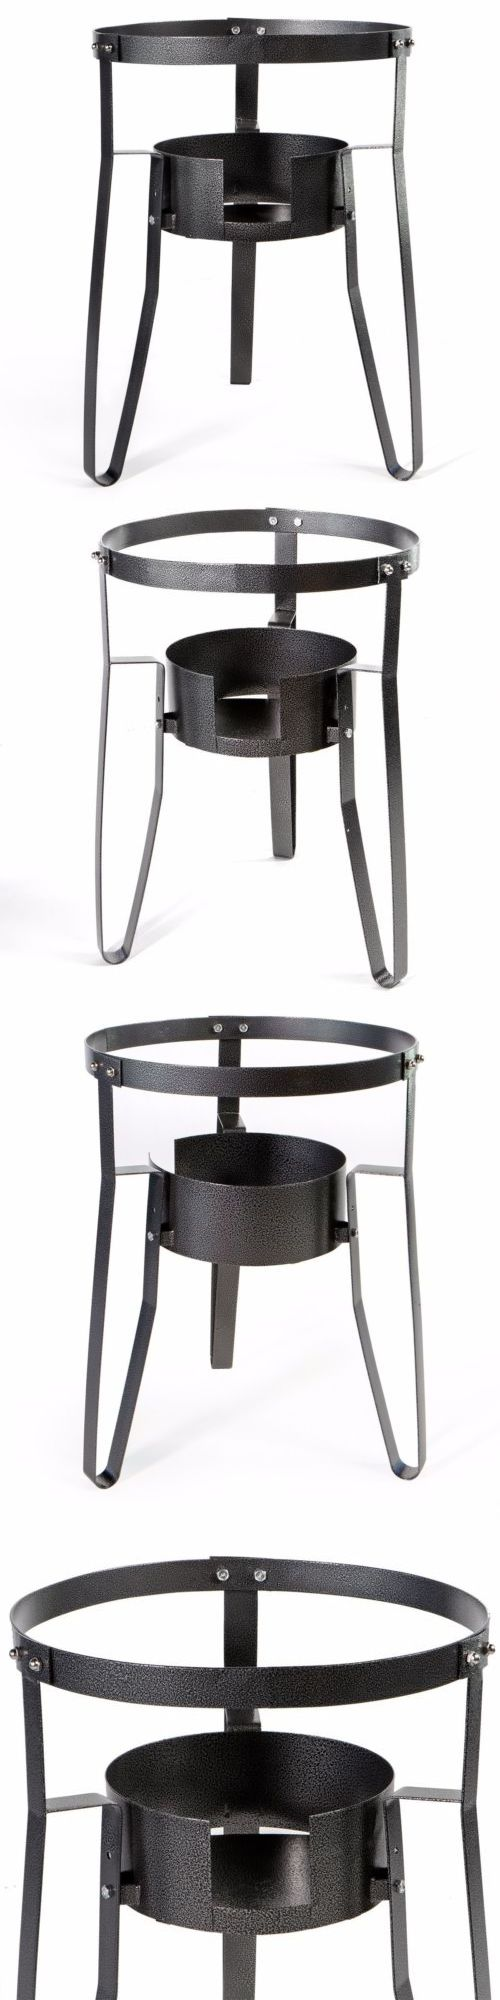 Parts and Accessories 181389: Single Portable Stove Propane Gas Burner Fryer Stand Outdoor Cooking Camping Bbq -> BUY IT NOW ONLY: $34.95 on eBay!